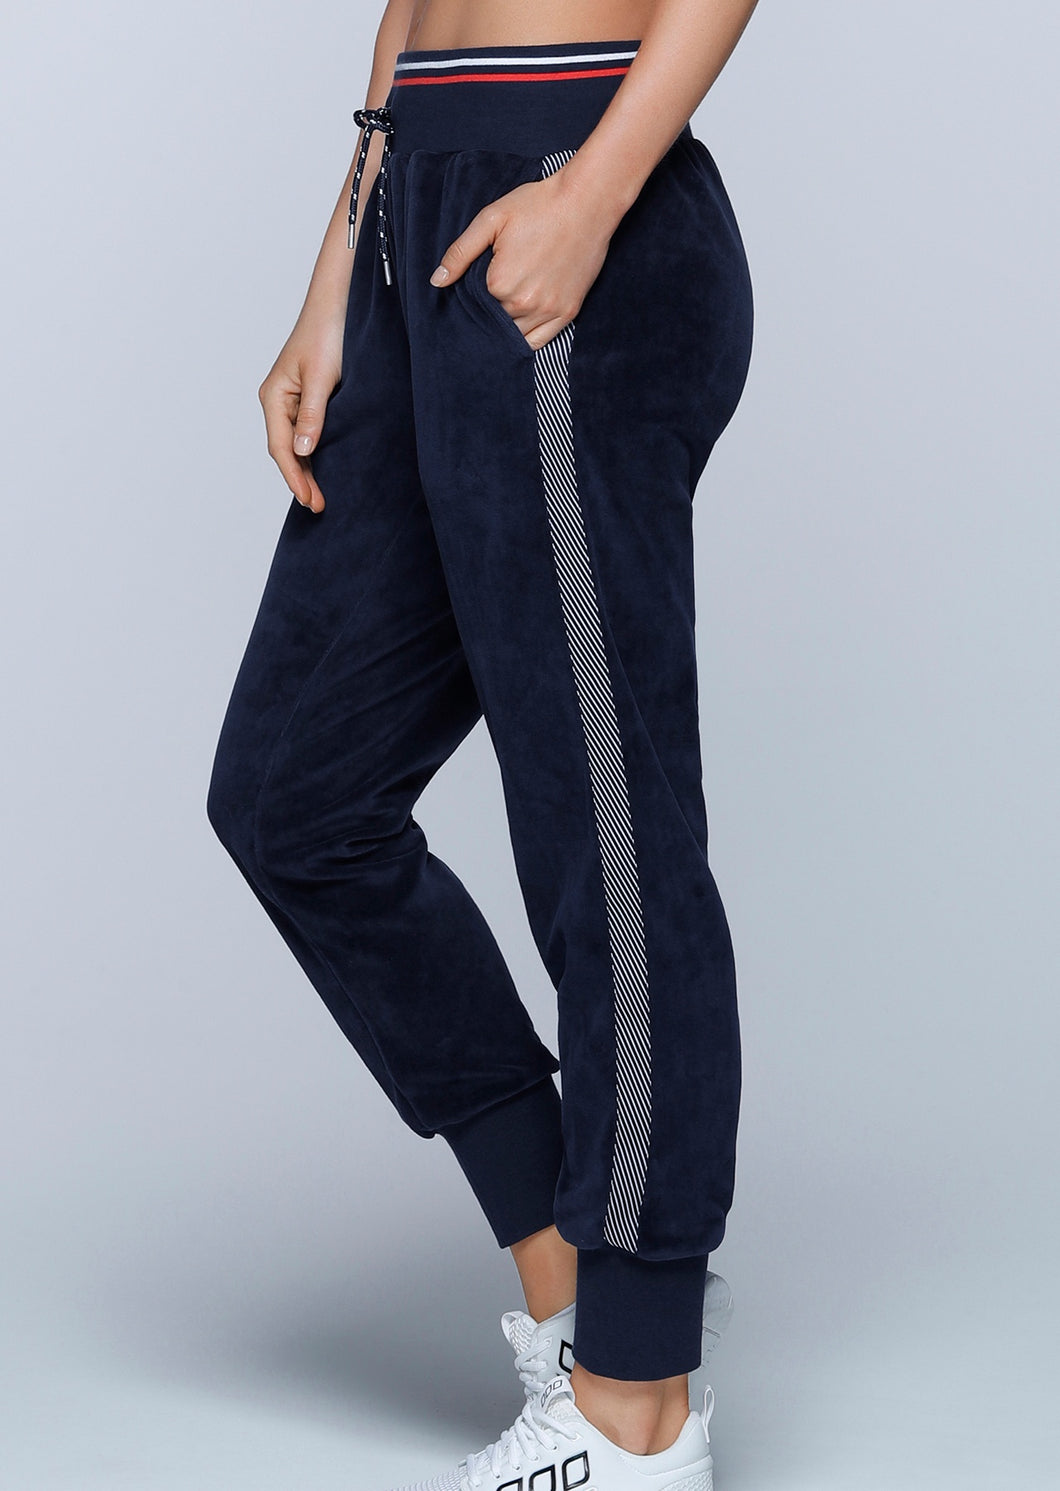 Lorna Jane Luxe Lounge Pant